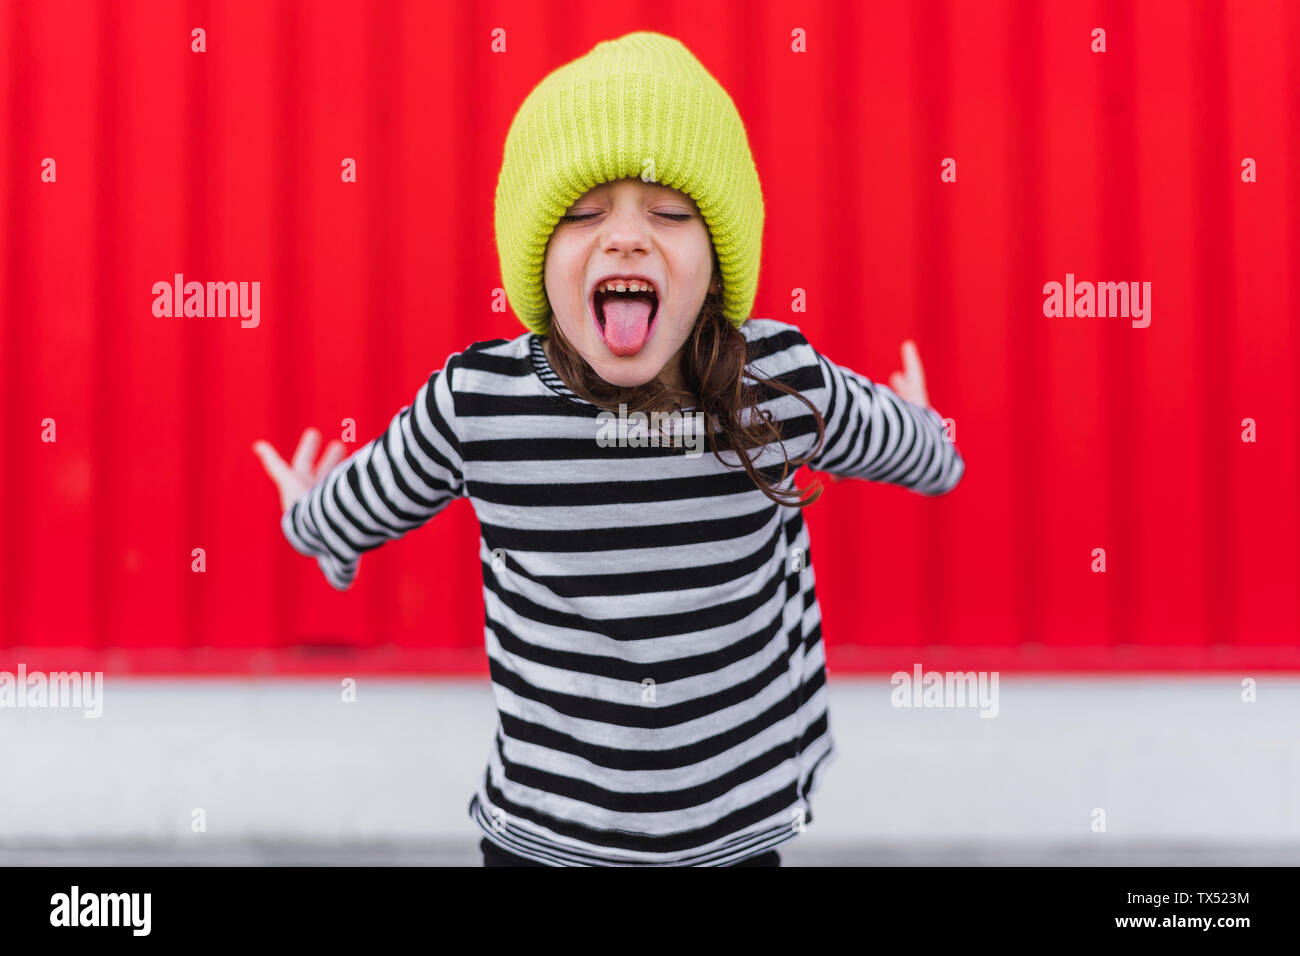 Portrait of little girl wearing striped shirt and yellow cap sticking out tongue in front of red background Stock Photo